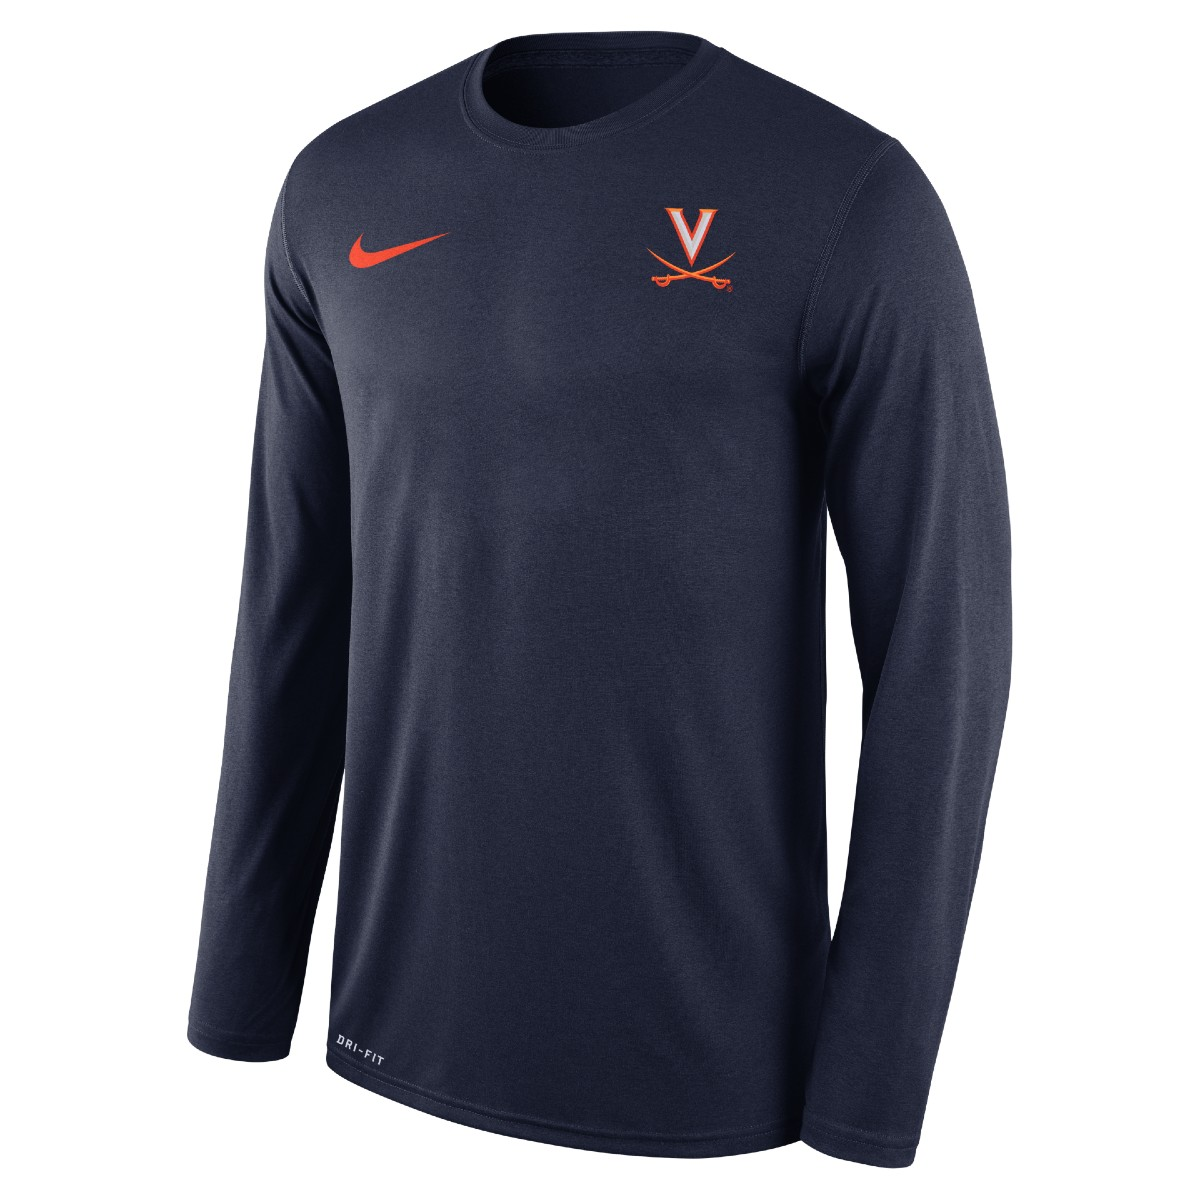 University of Virginia LS Nike Legend Navy T-shirt